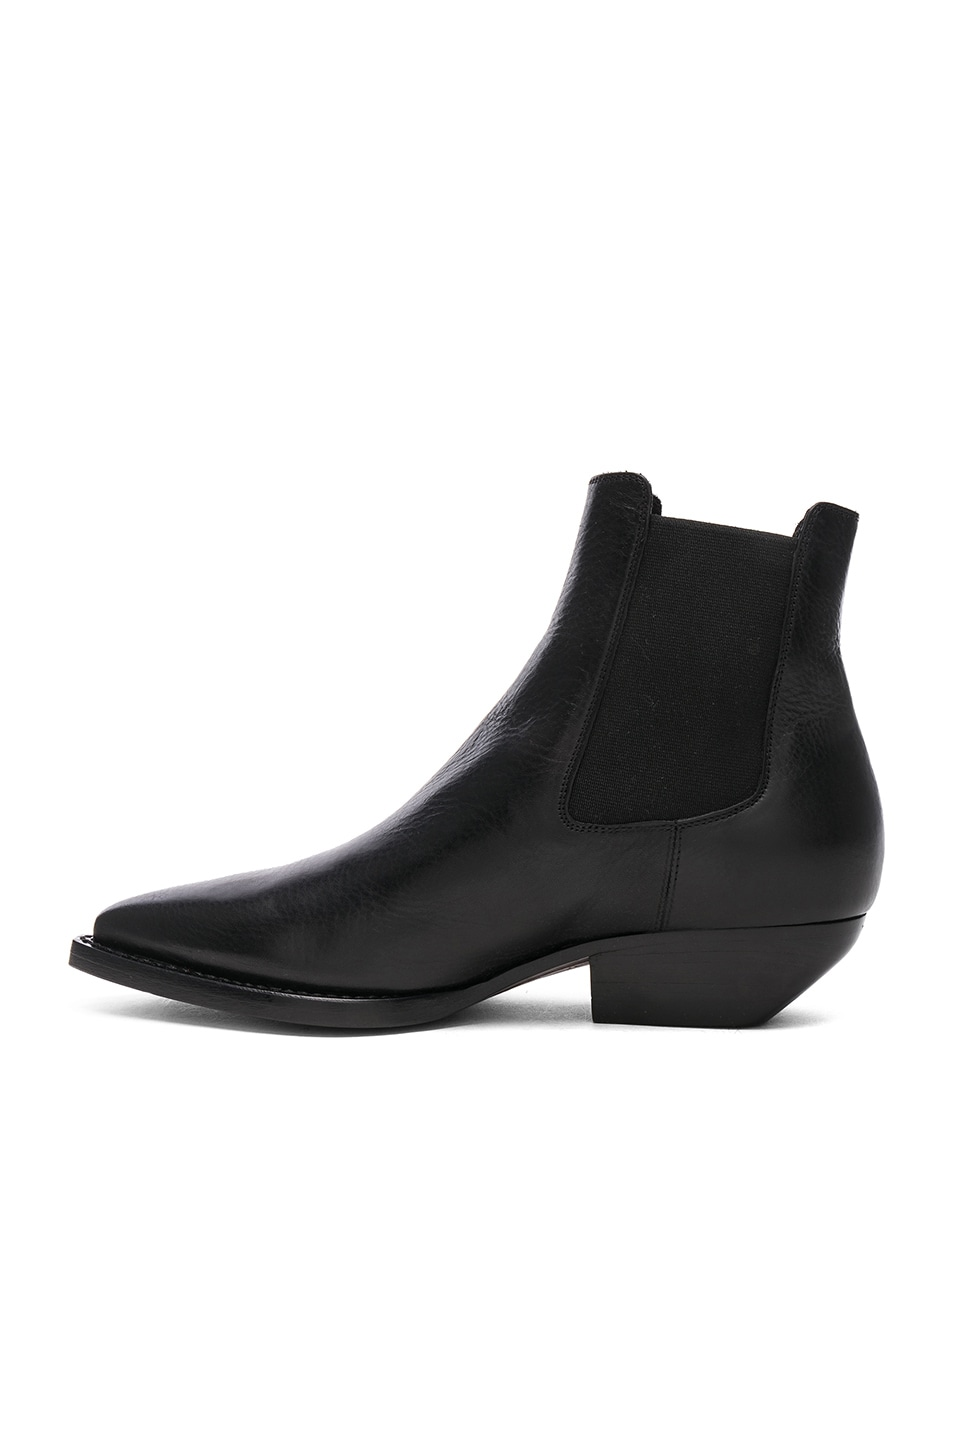 Image 5 of Saint Laurent Theo Leather Chelsea Boots in Black